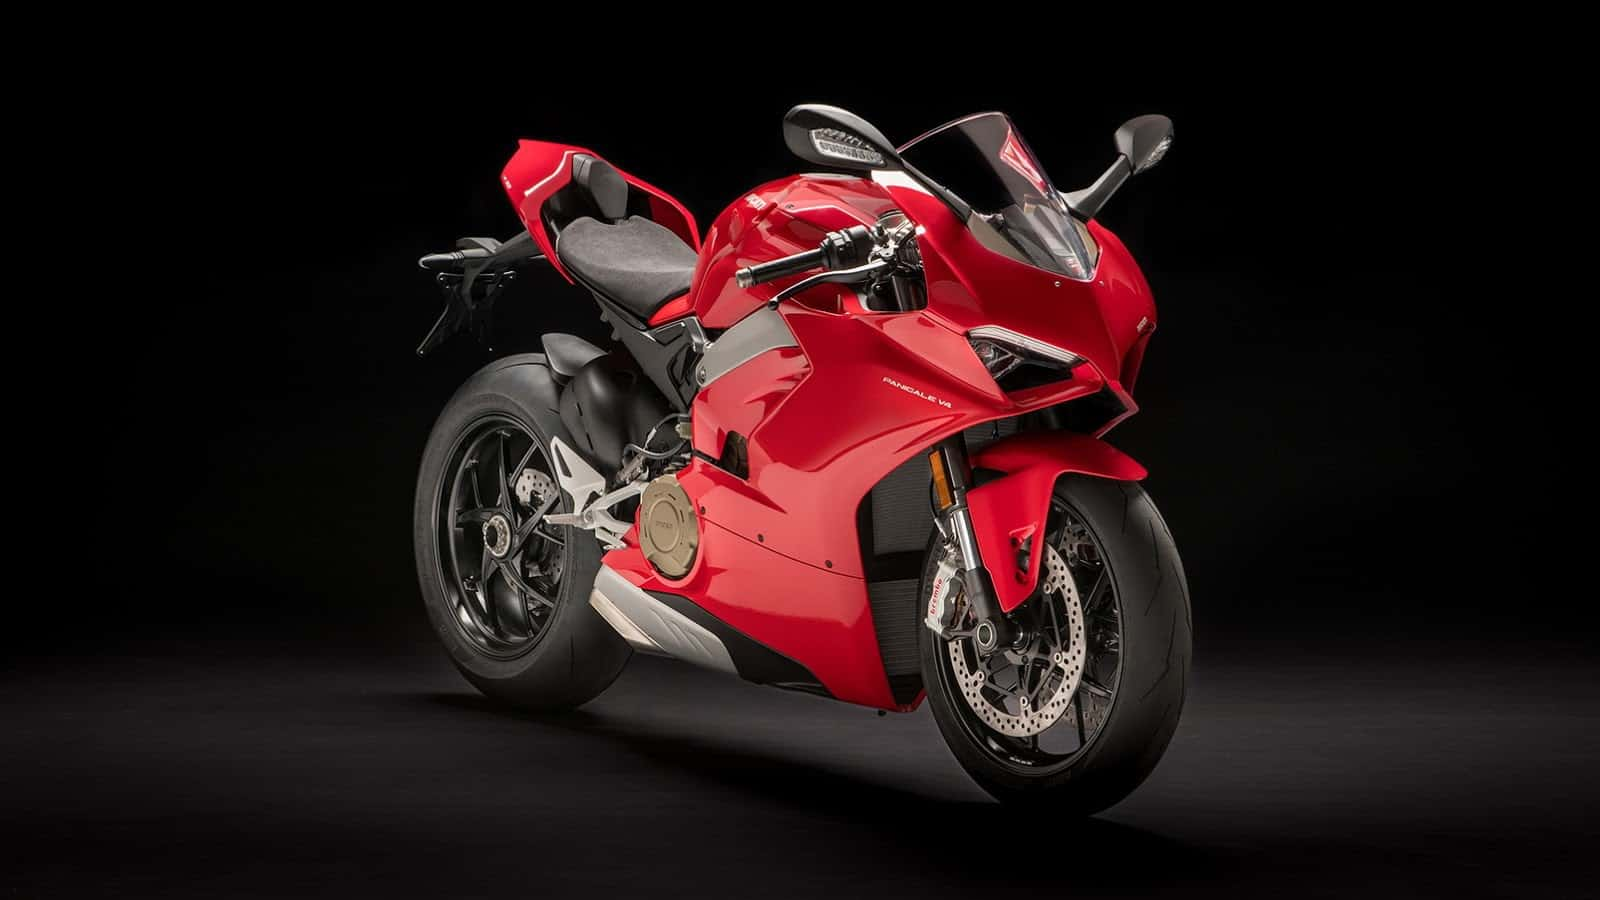 The Fiery Red Ducati Panigale V4 Joins In On The Fun